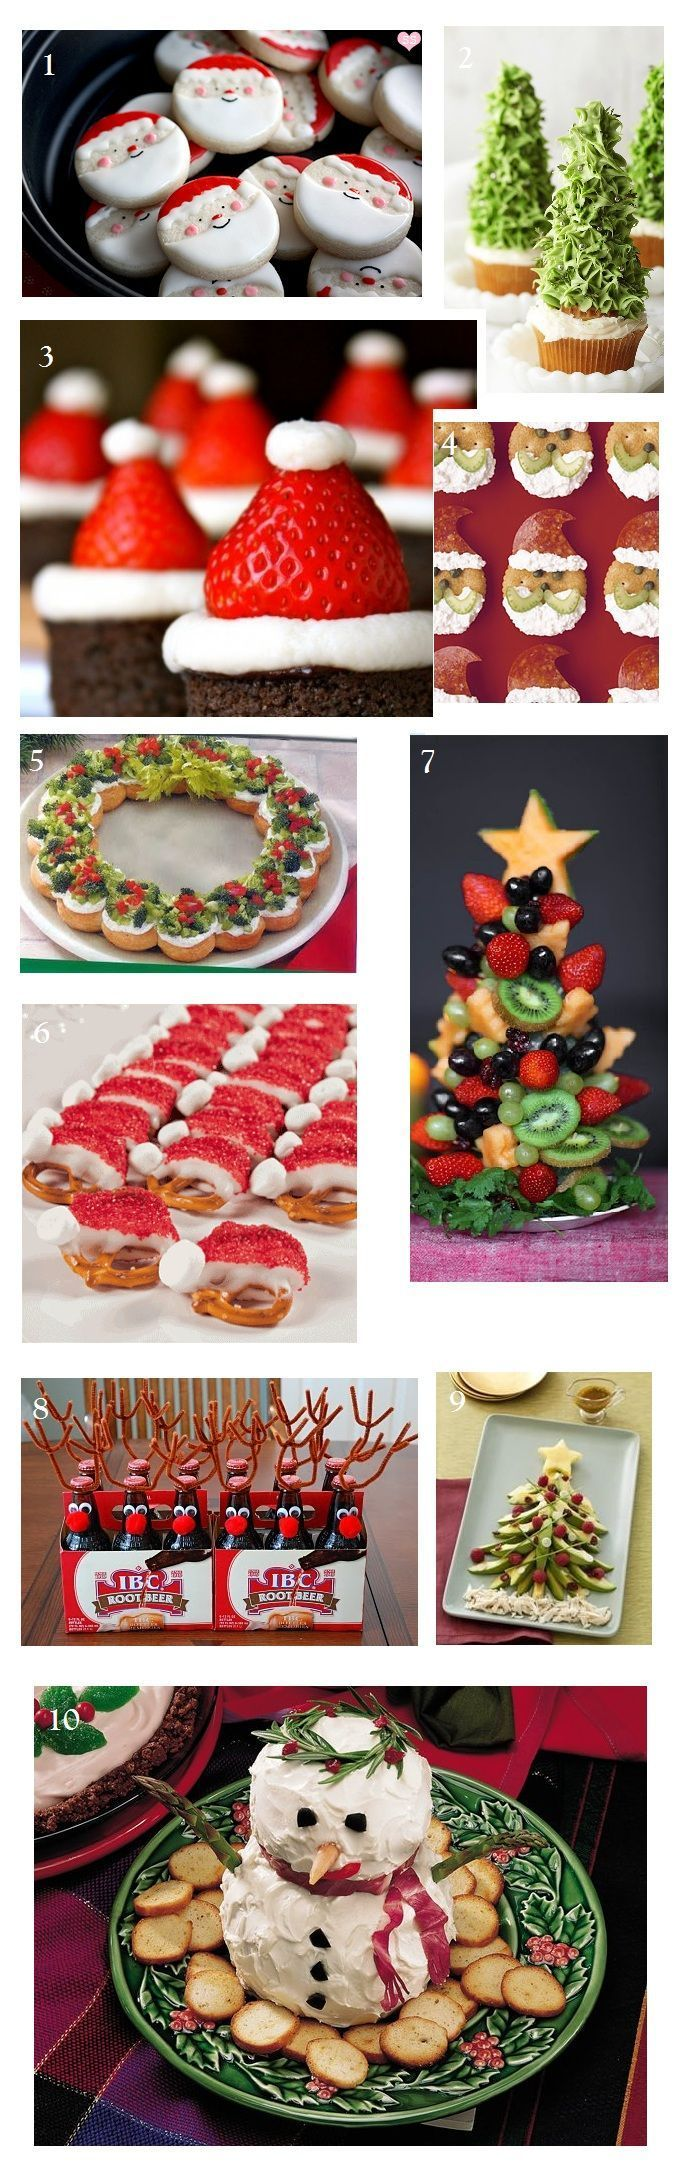 Christmas Party Food Ideas  Appetizers and Desserts